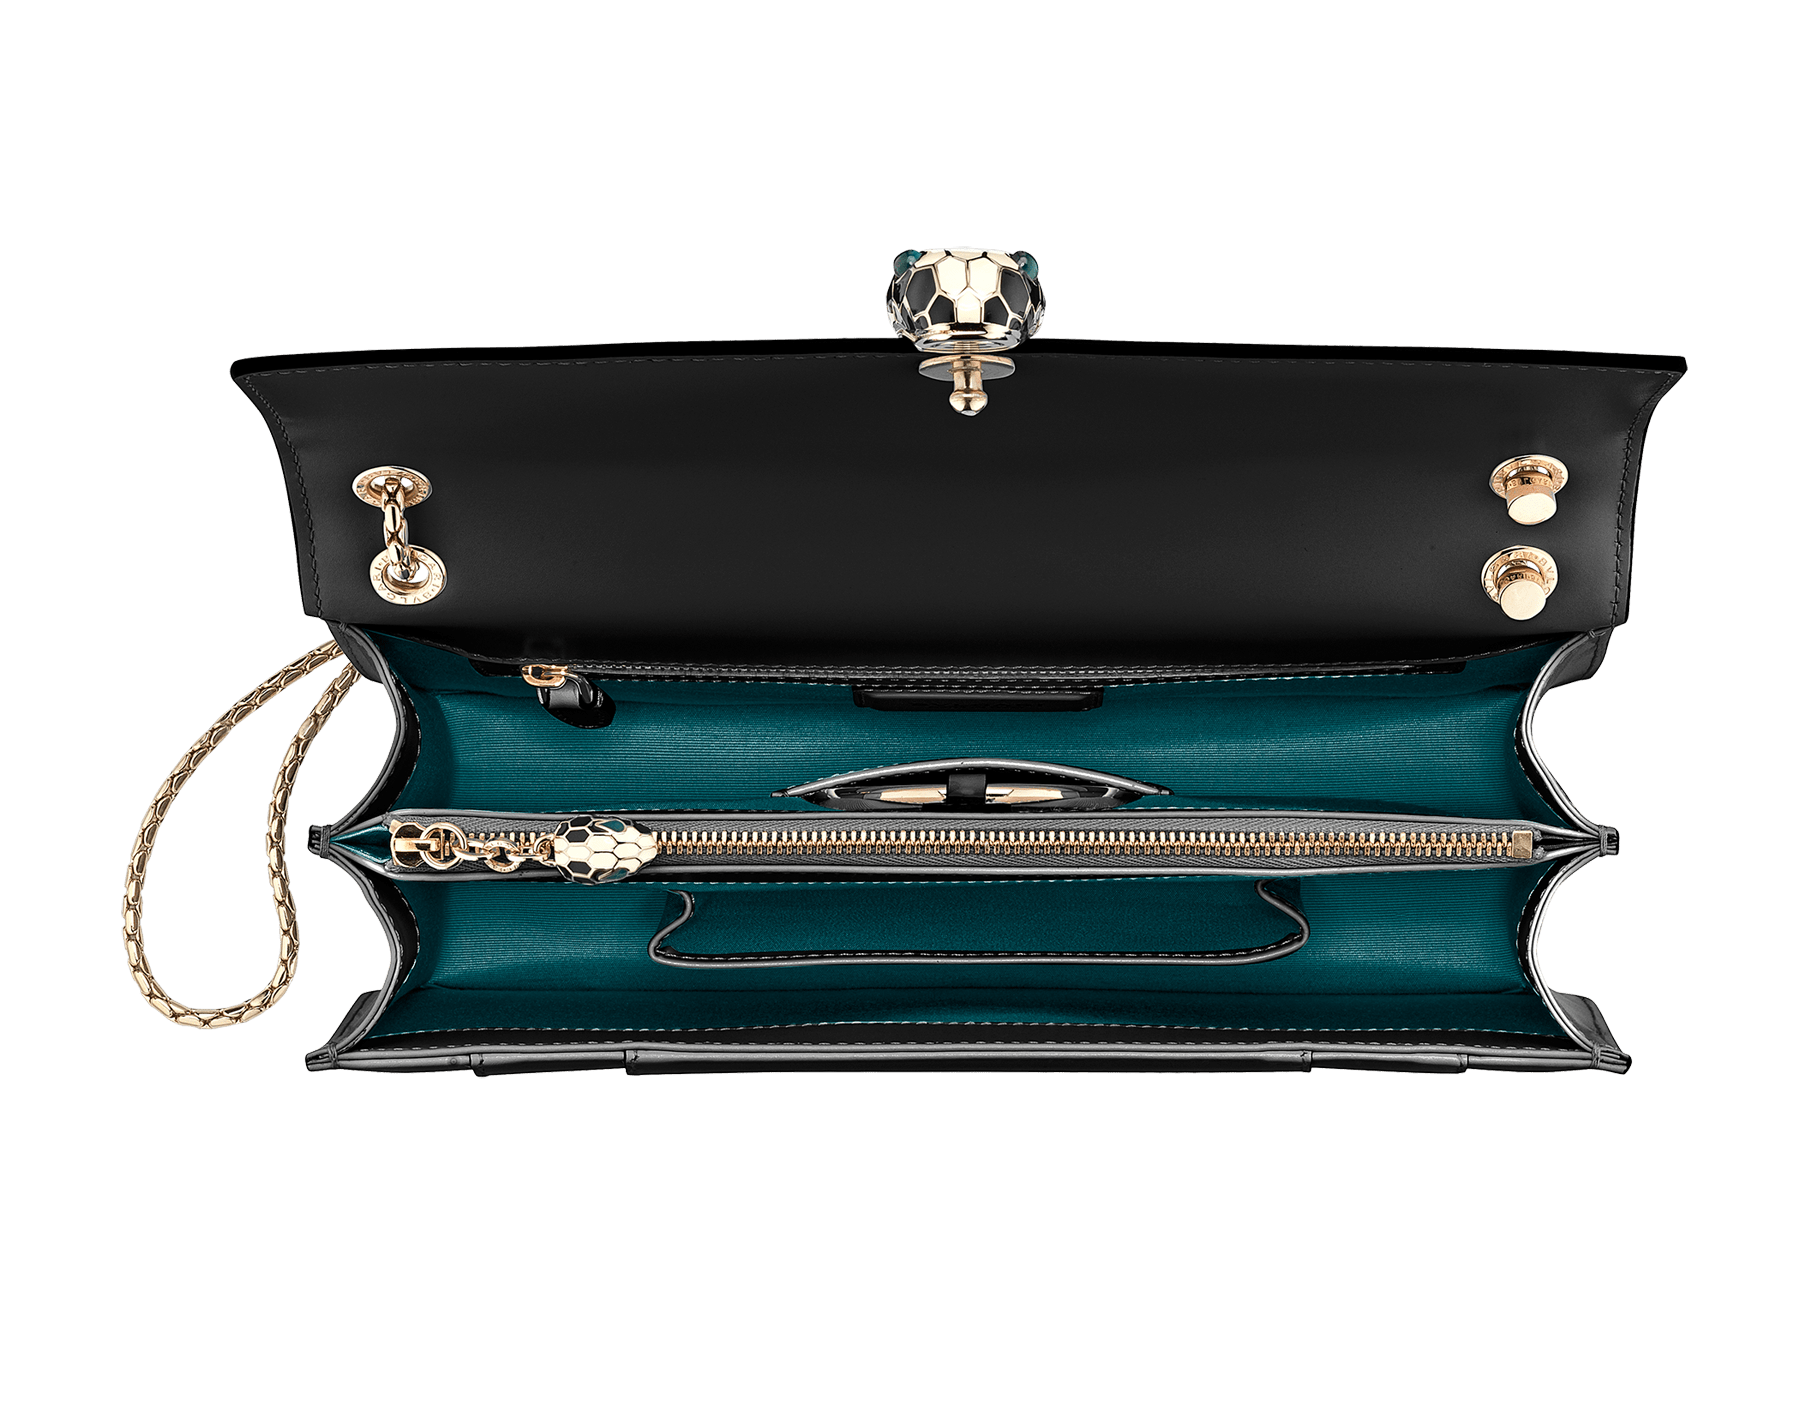 Black calf leather shoulder bag with brass light gold plated black and white enamel Serpenti head closure with malachite eyes. 35106 image 4